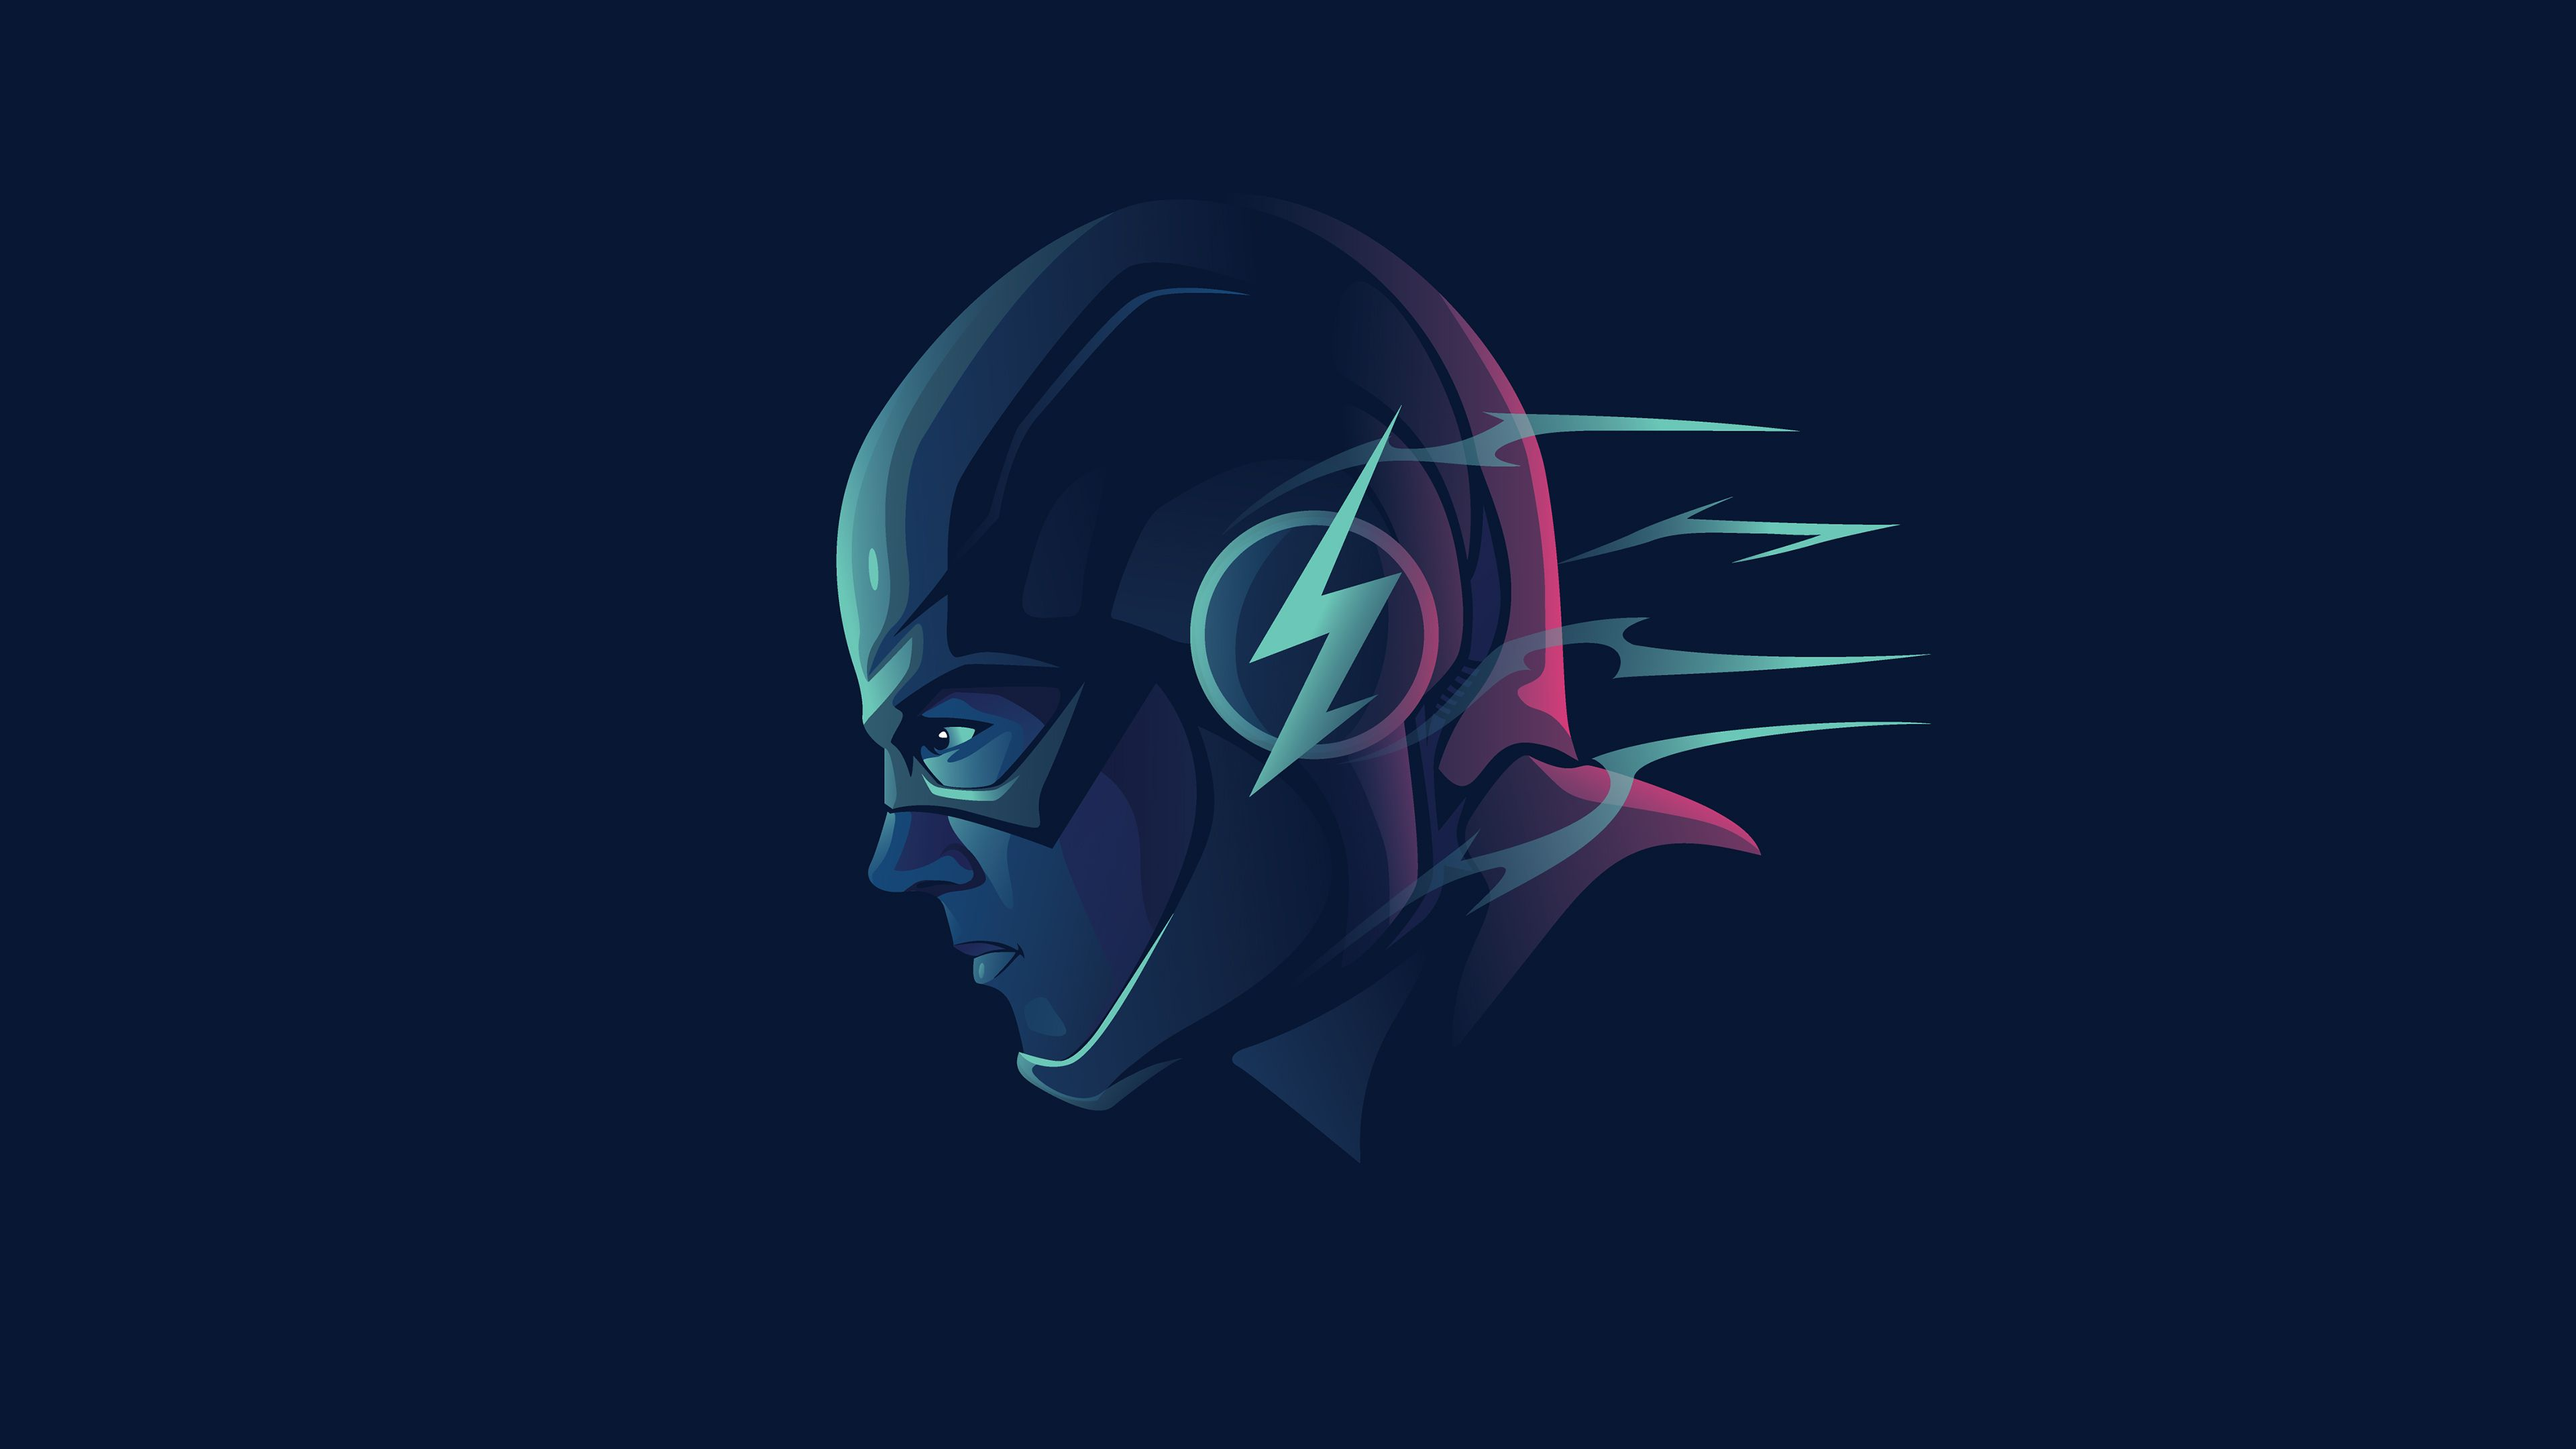 Flash Minimalist 4k Superheroes Wallpapers Minimalist Wallpapers Minimalism Wallpapers Hd Wallpaper Flash Wallpaper Superhero Wallpaper Minimalist Wallpaper